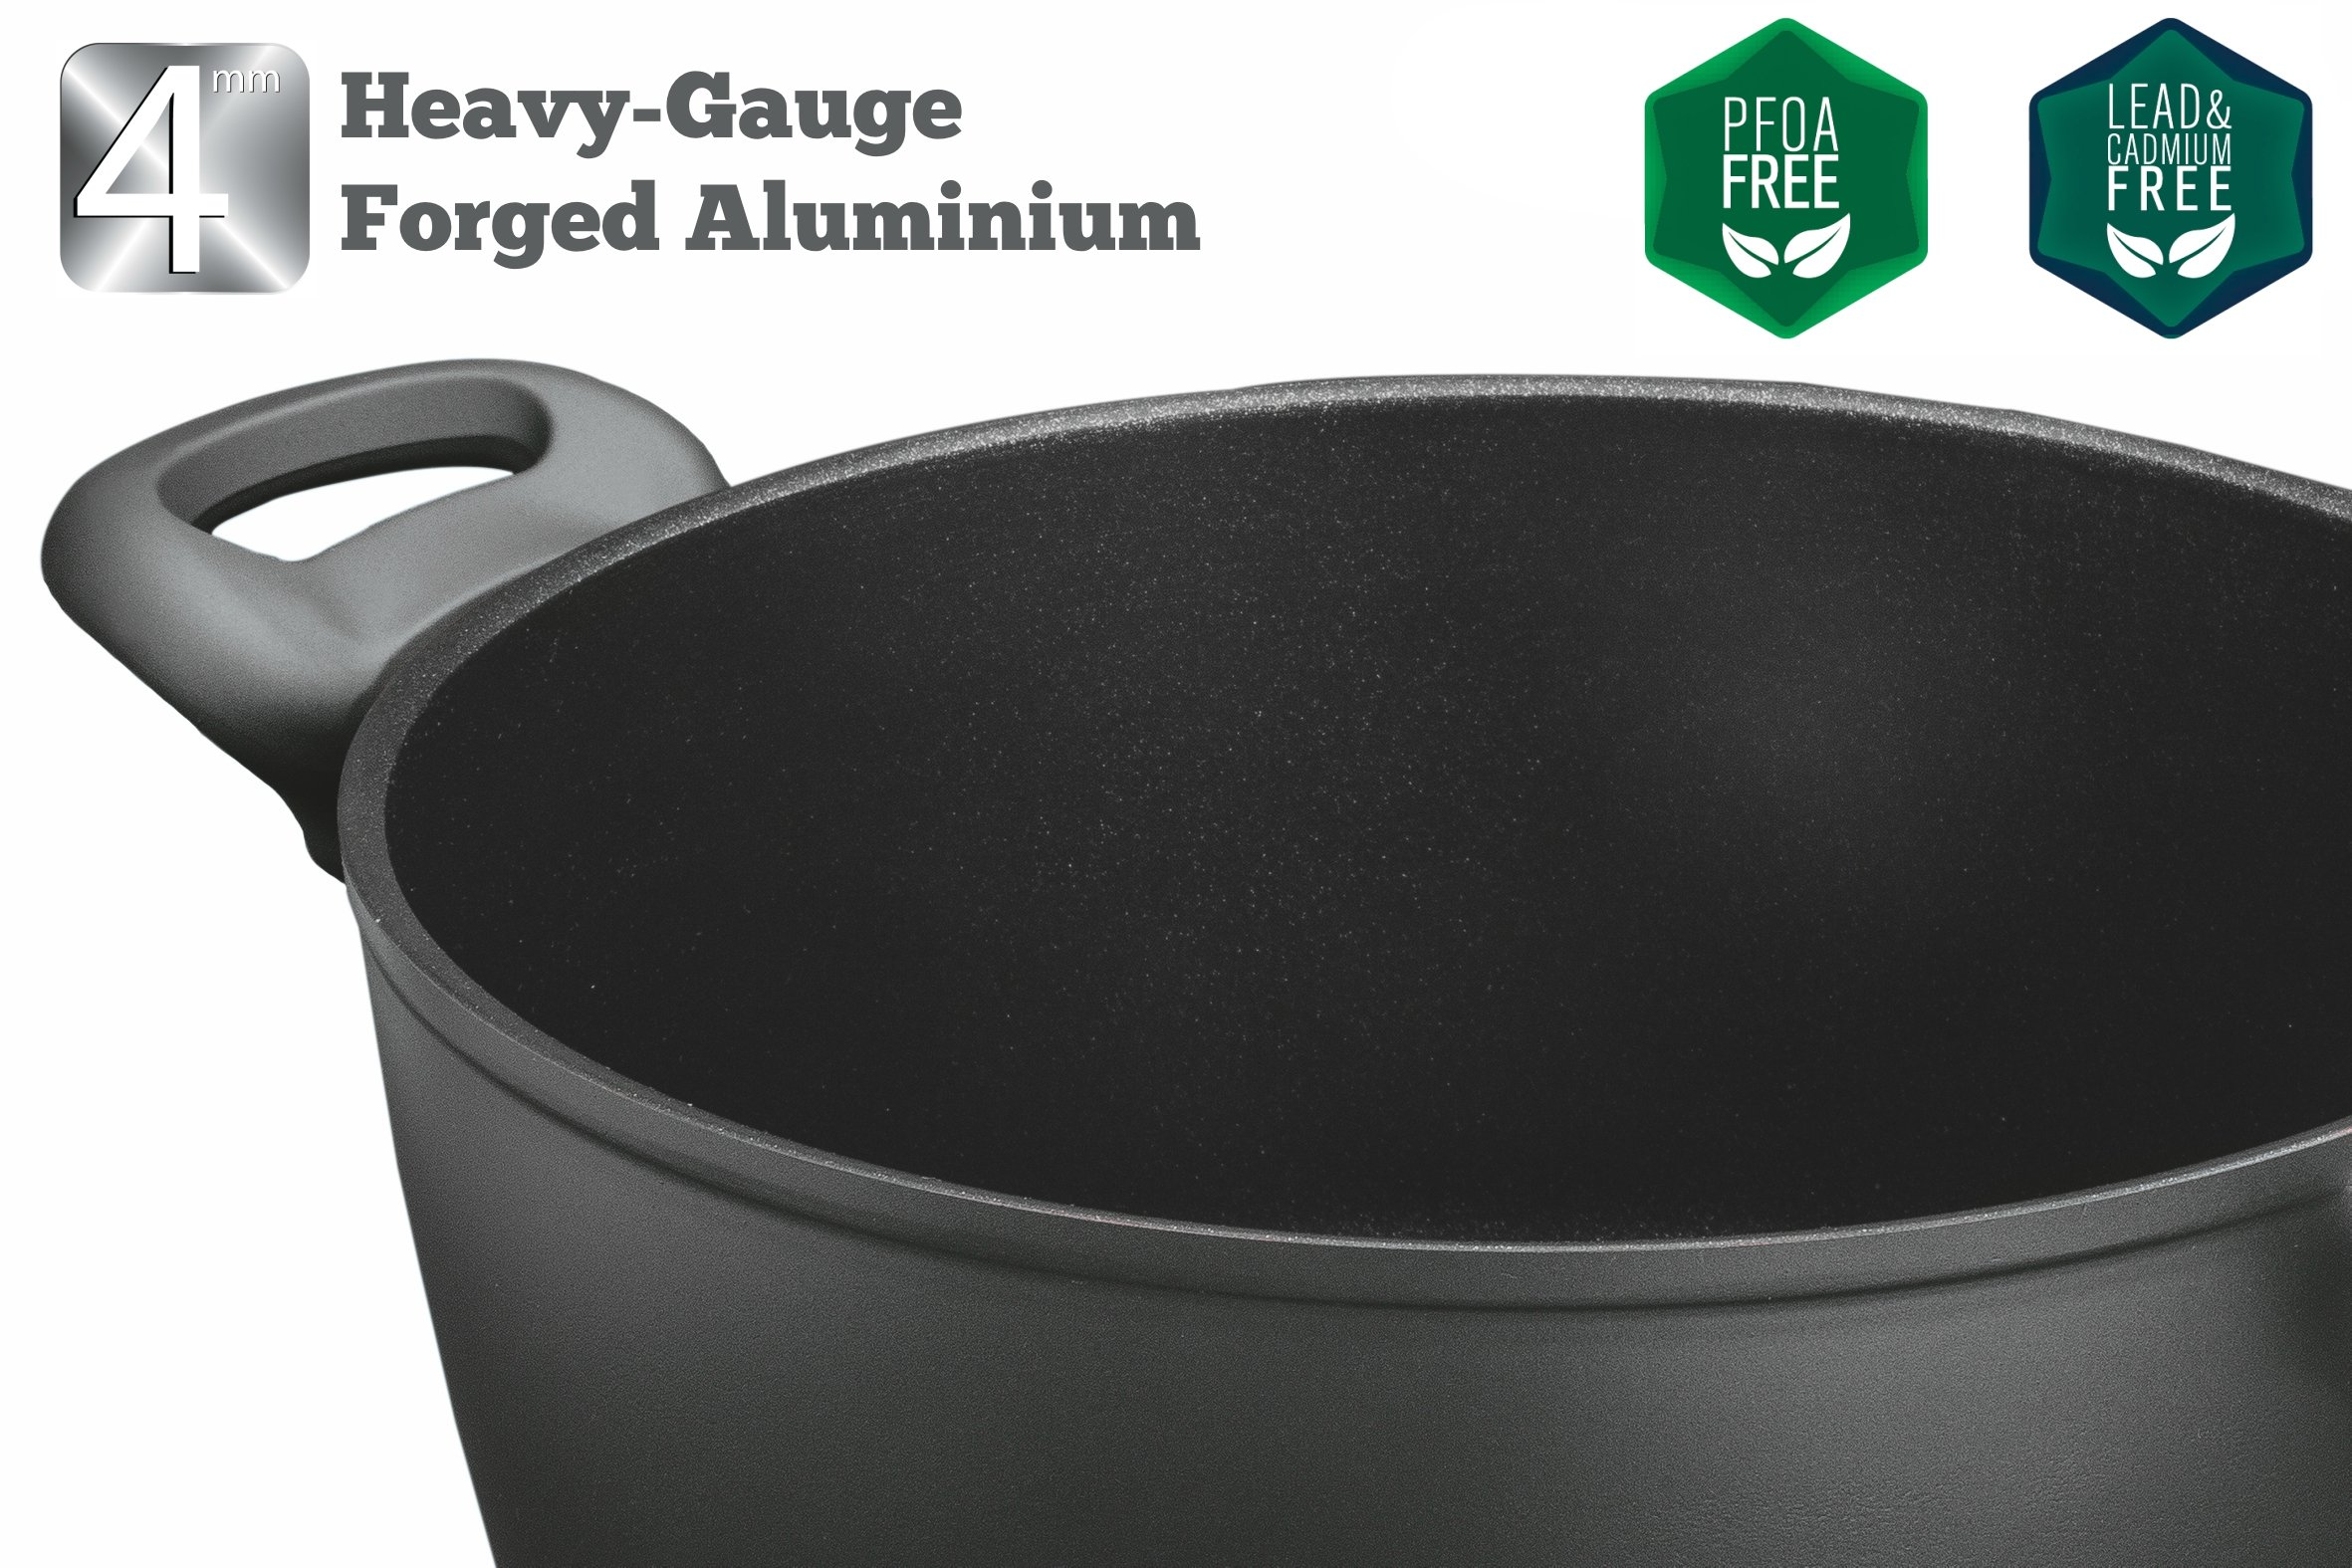 Saflon Titanium Nonstick 8-Quart Stock Pot with Tempered Glass Lid, 4mm Forged Aluminum with PFOA Free Coating from England by SAFLON (Image #3)